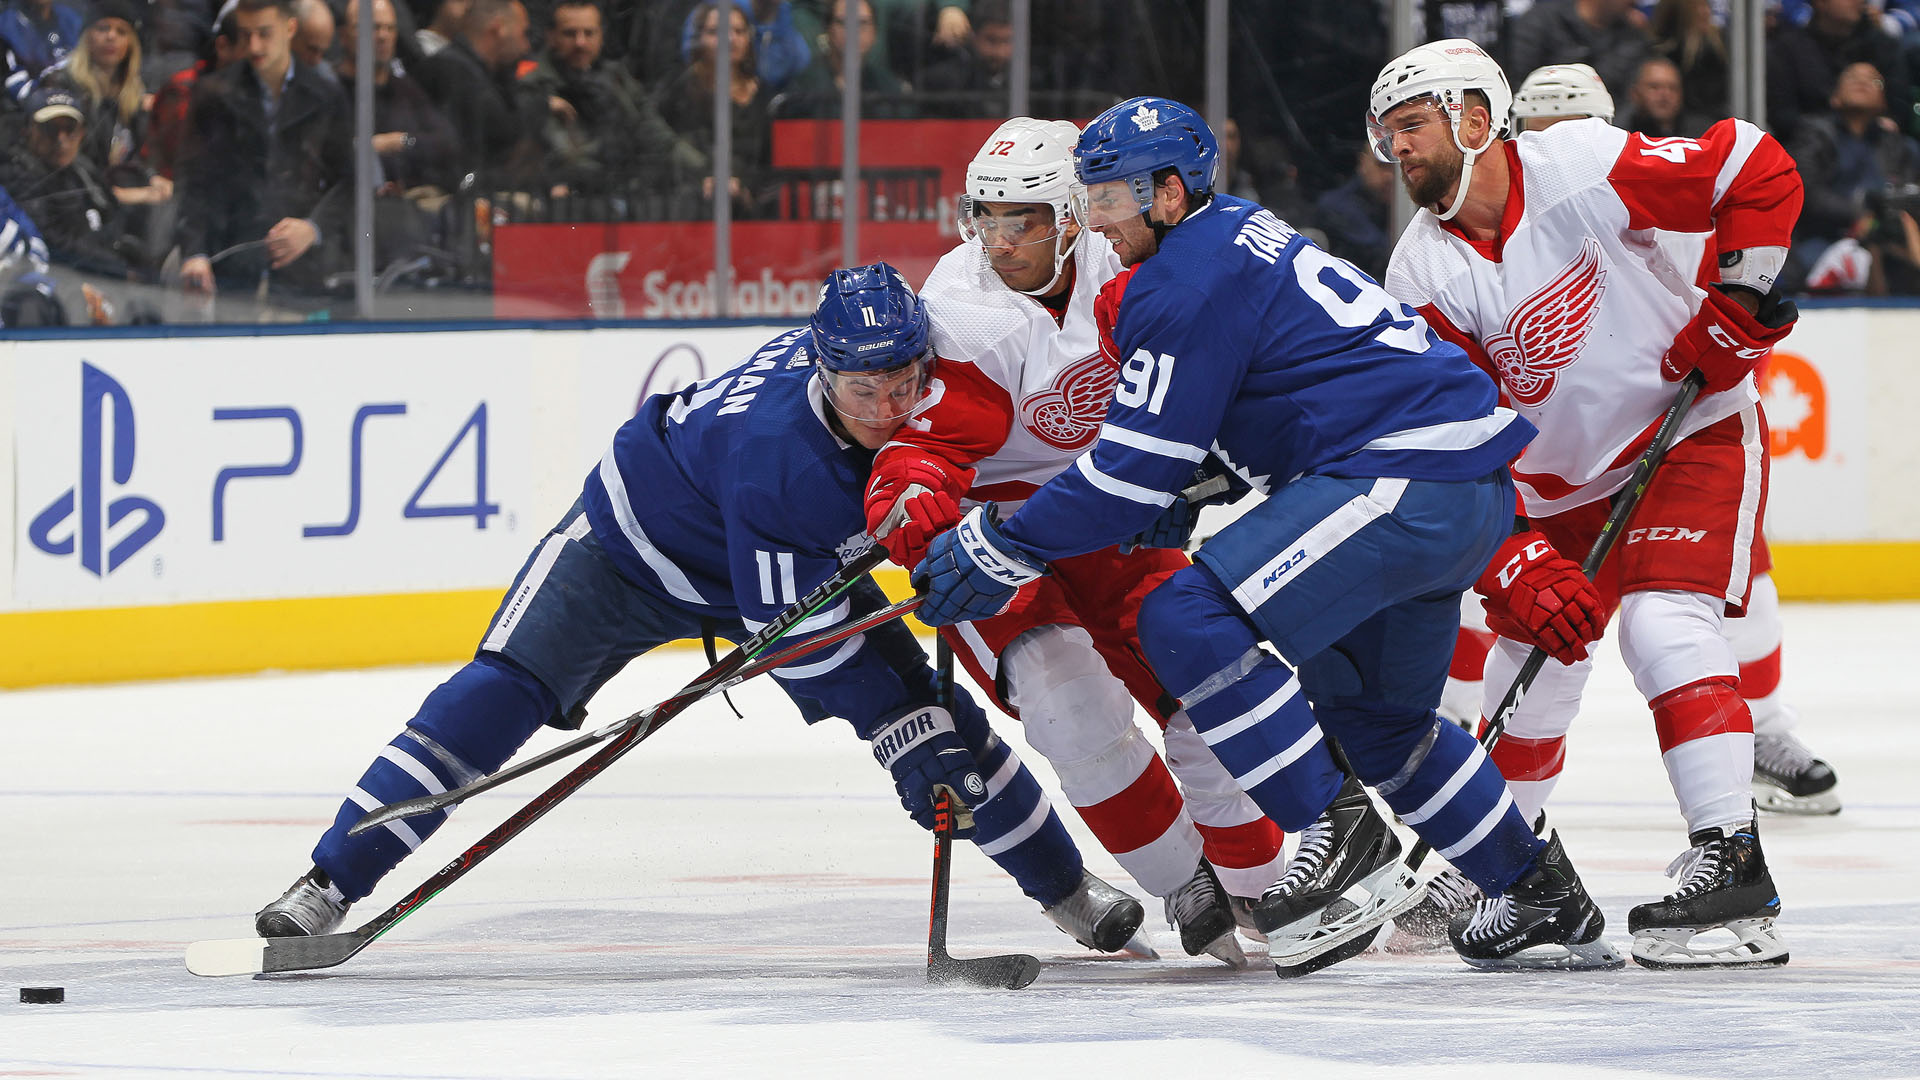 detroit red wings toronto maple leafs 120618 getty_1544152013321